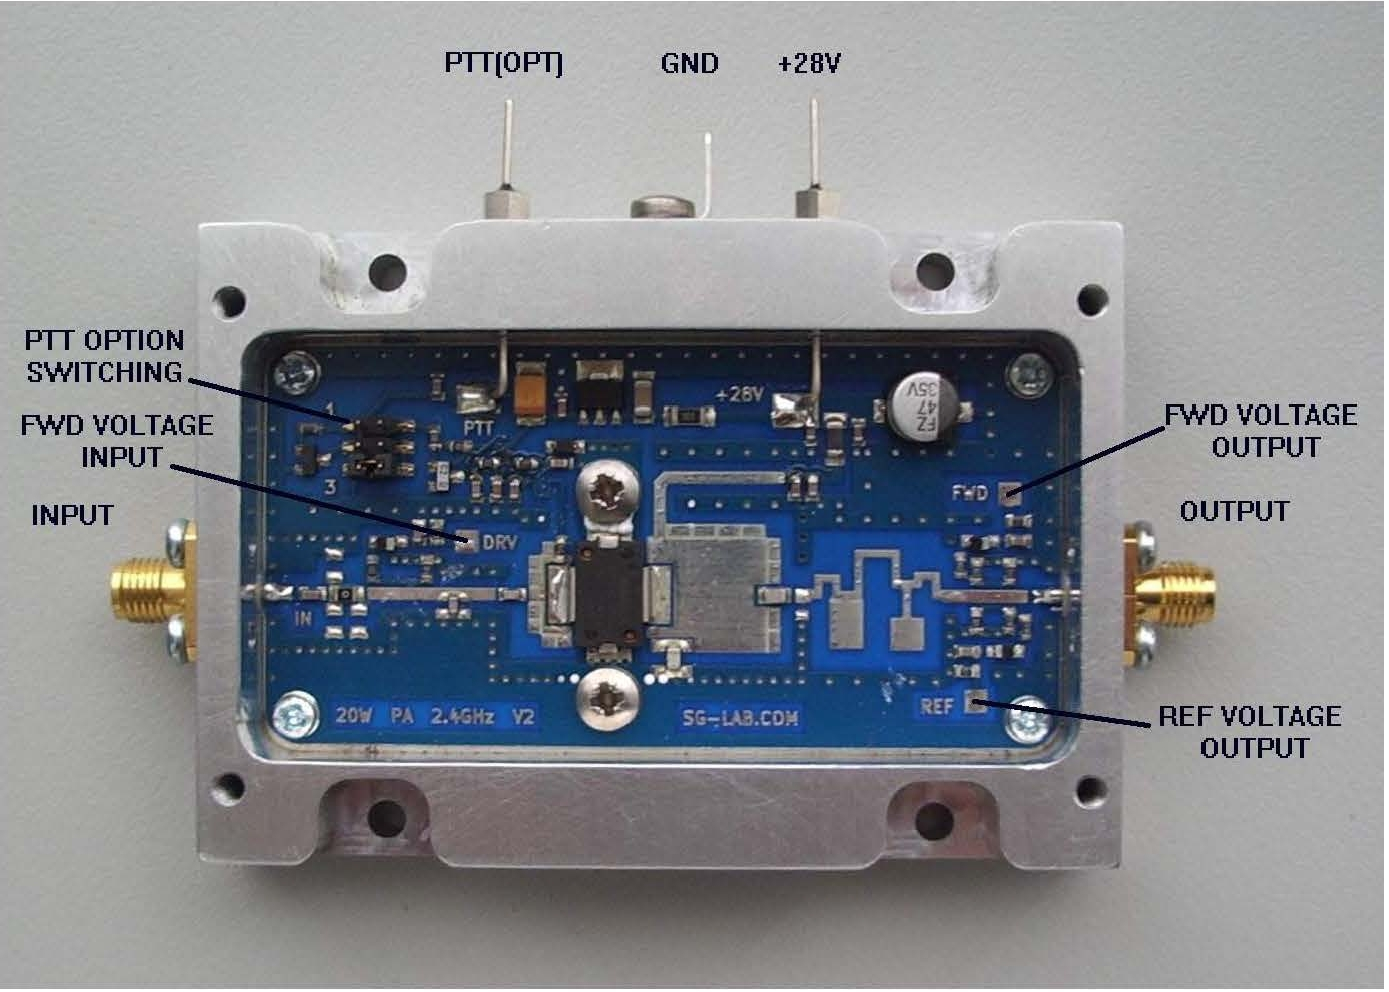 SG Laboratory Ltd: Power amplifier for 2 4GHz up link - PA for TX